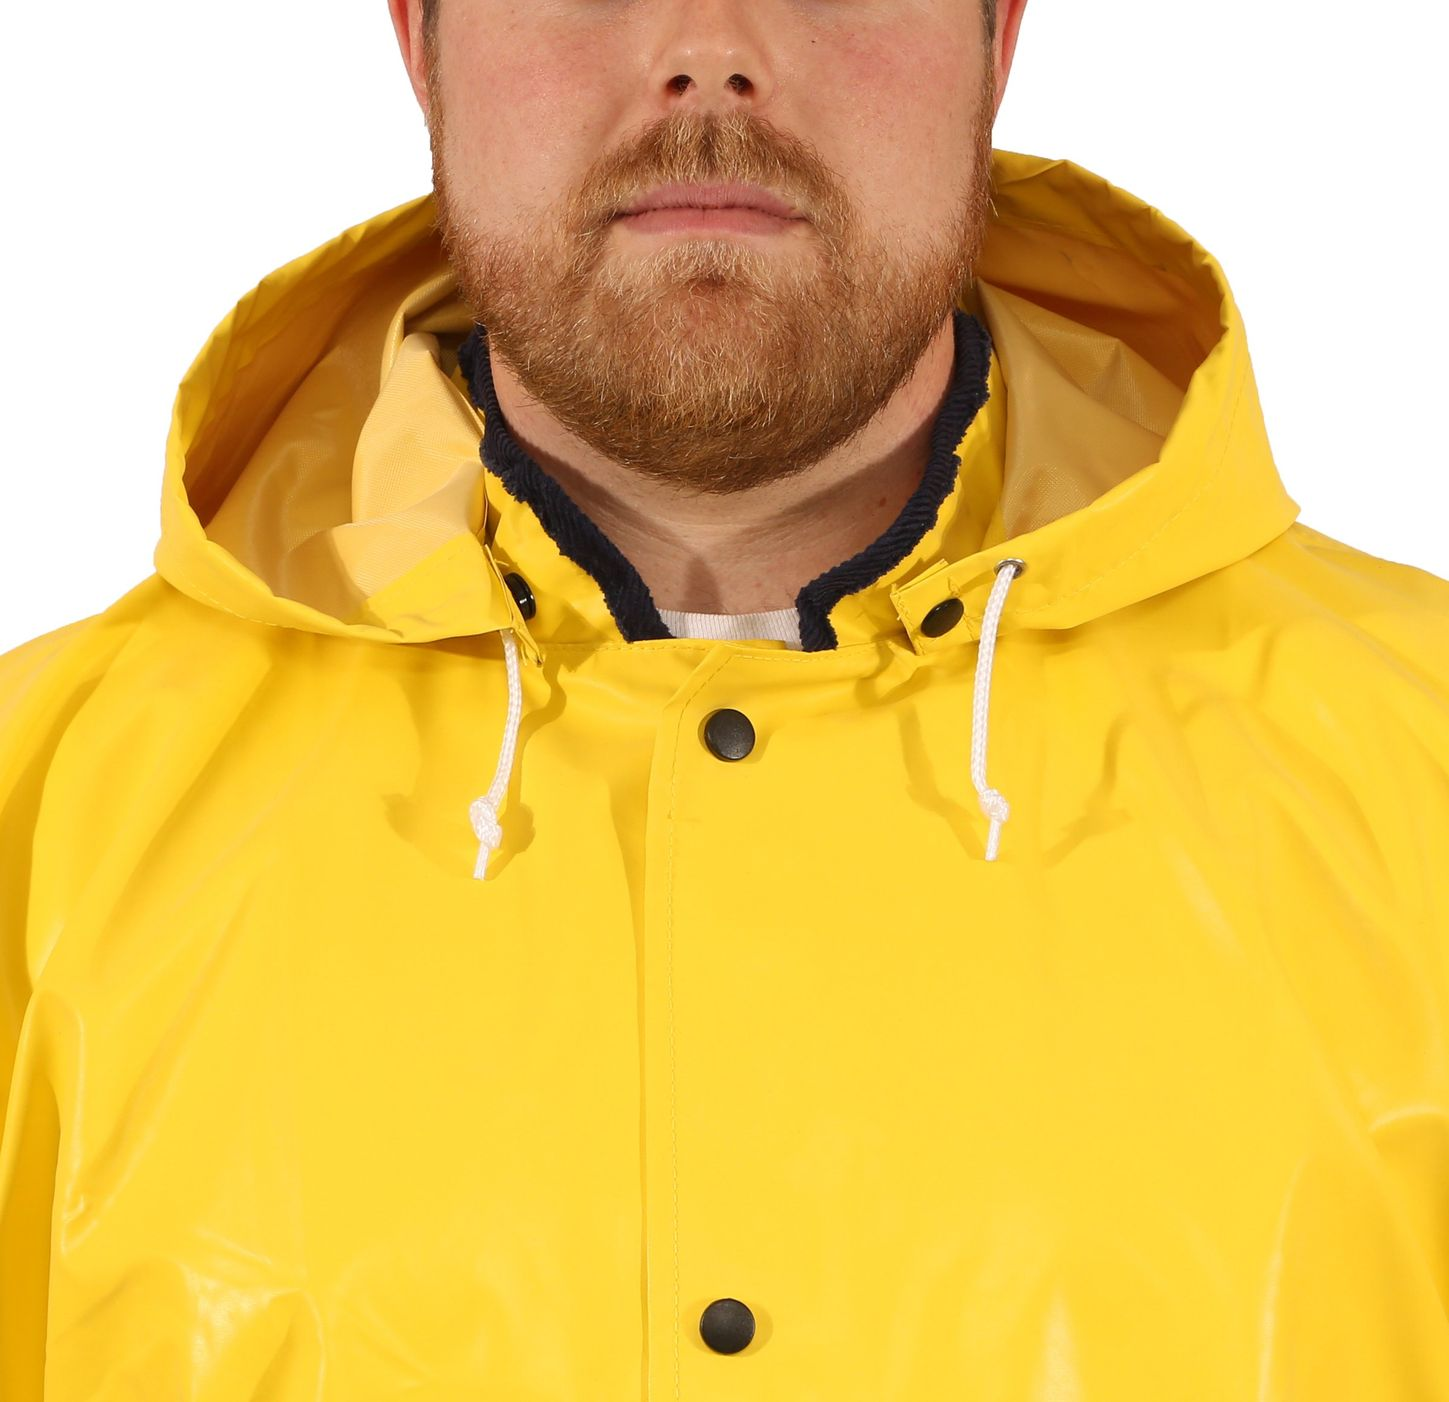 tingley-h12107-magnaprene-flame-resistant-detachable-rain-hood-neoprene-coated-chemical-resistant-front.jpg